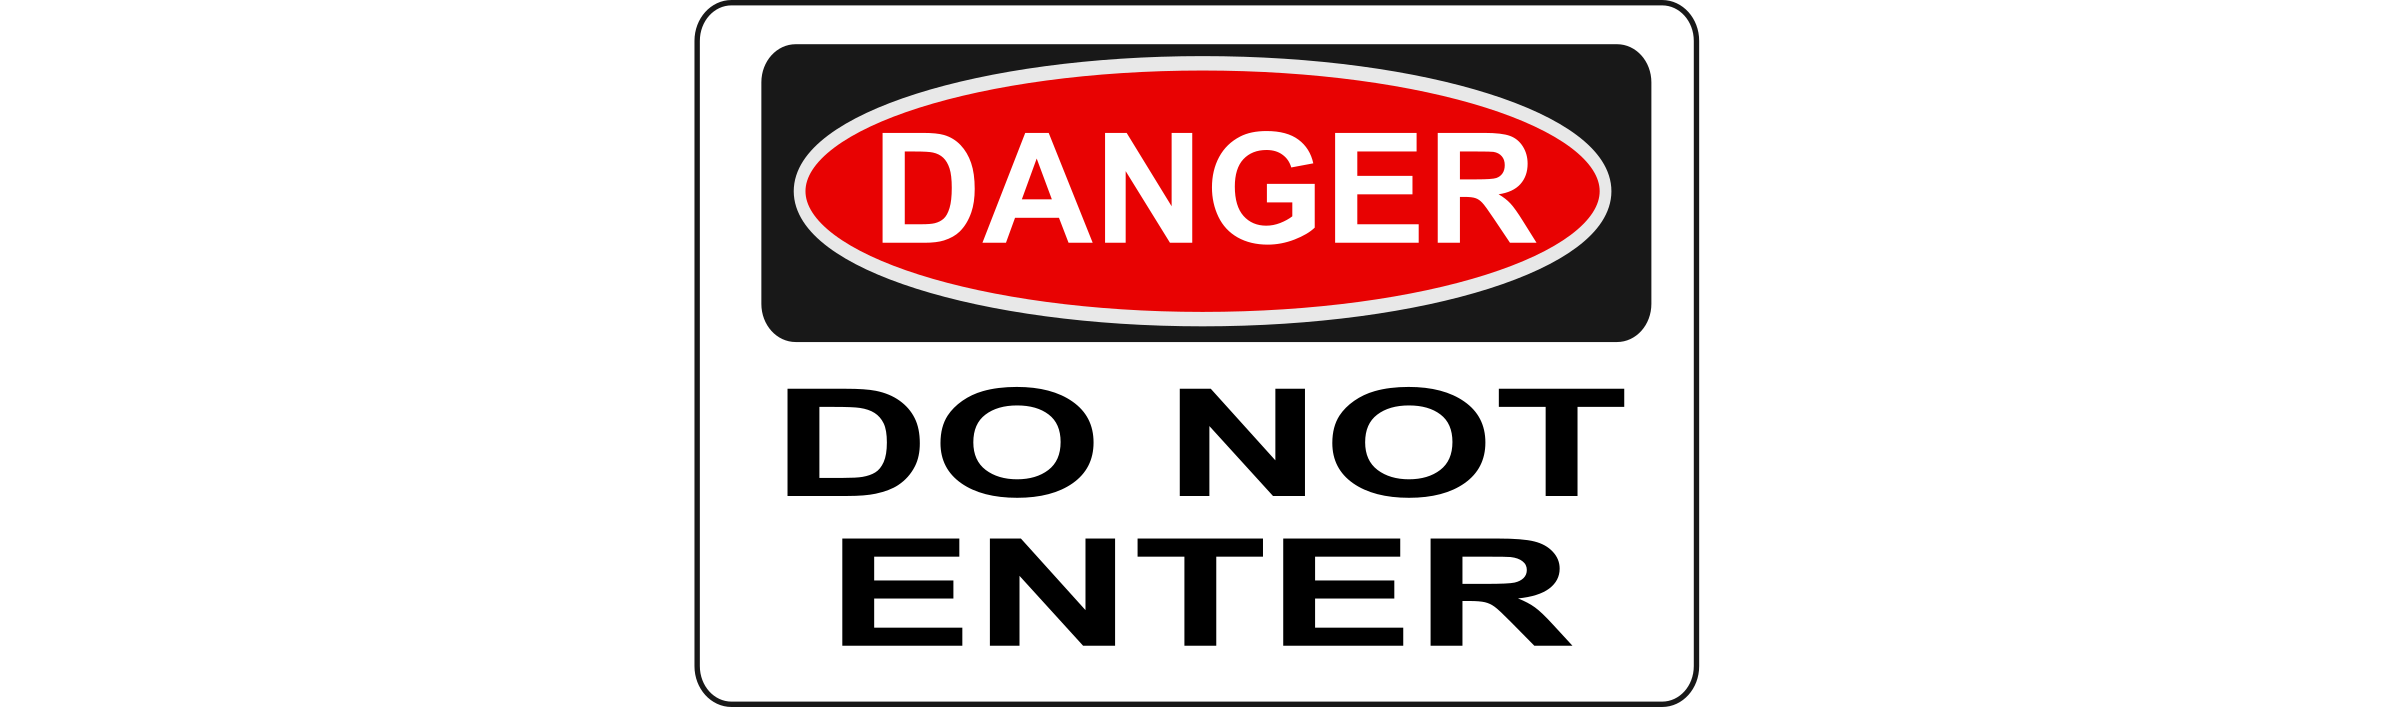 Danger - Do Not Enter by Rfc1394